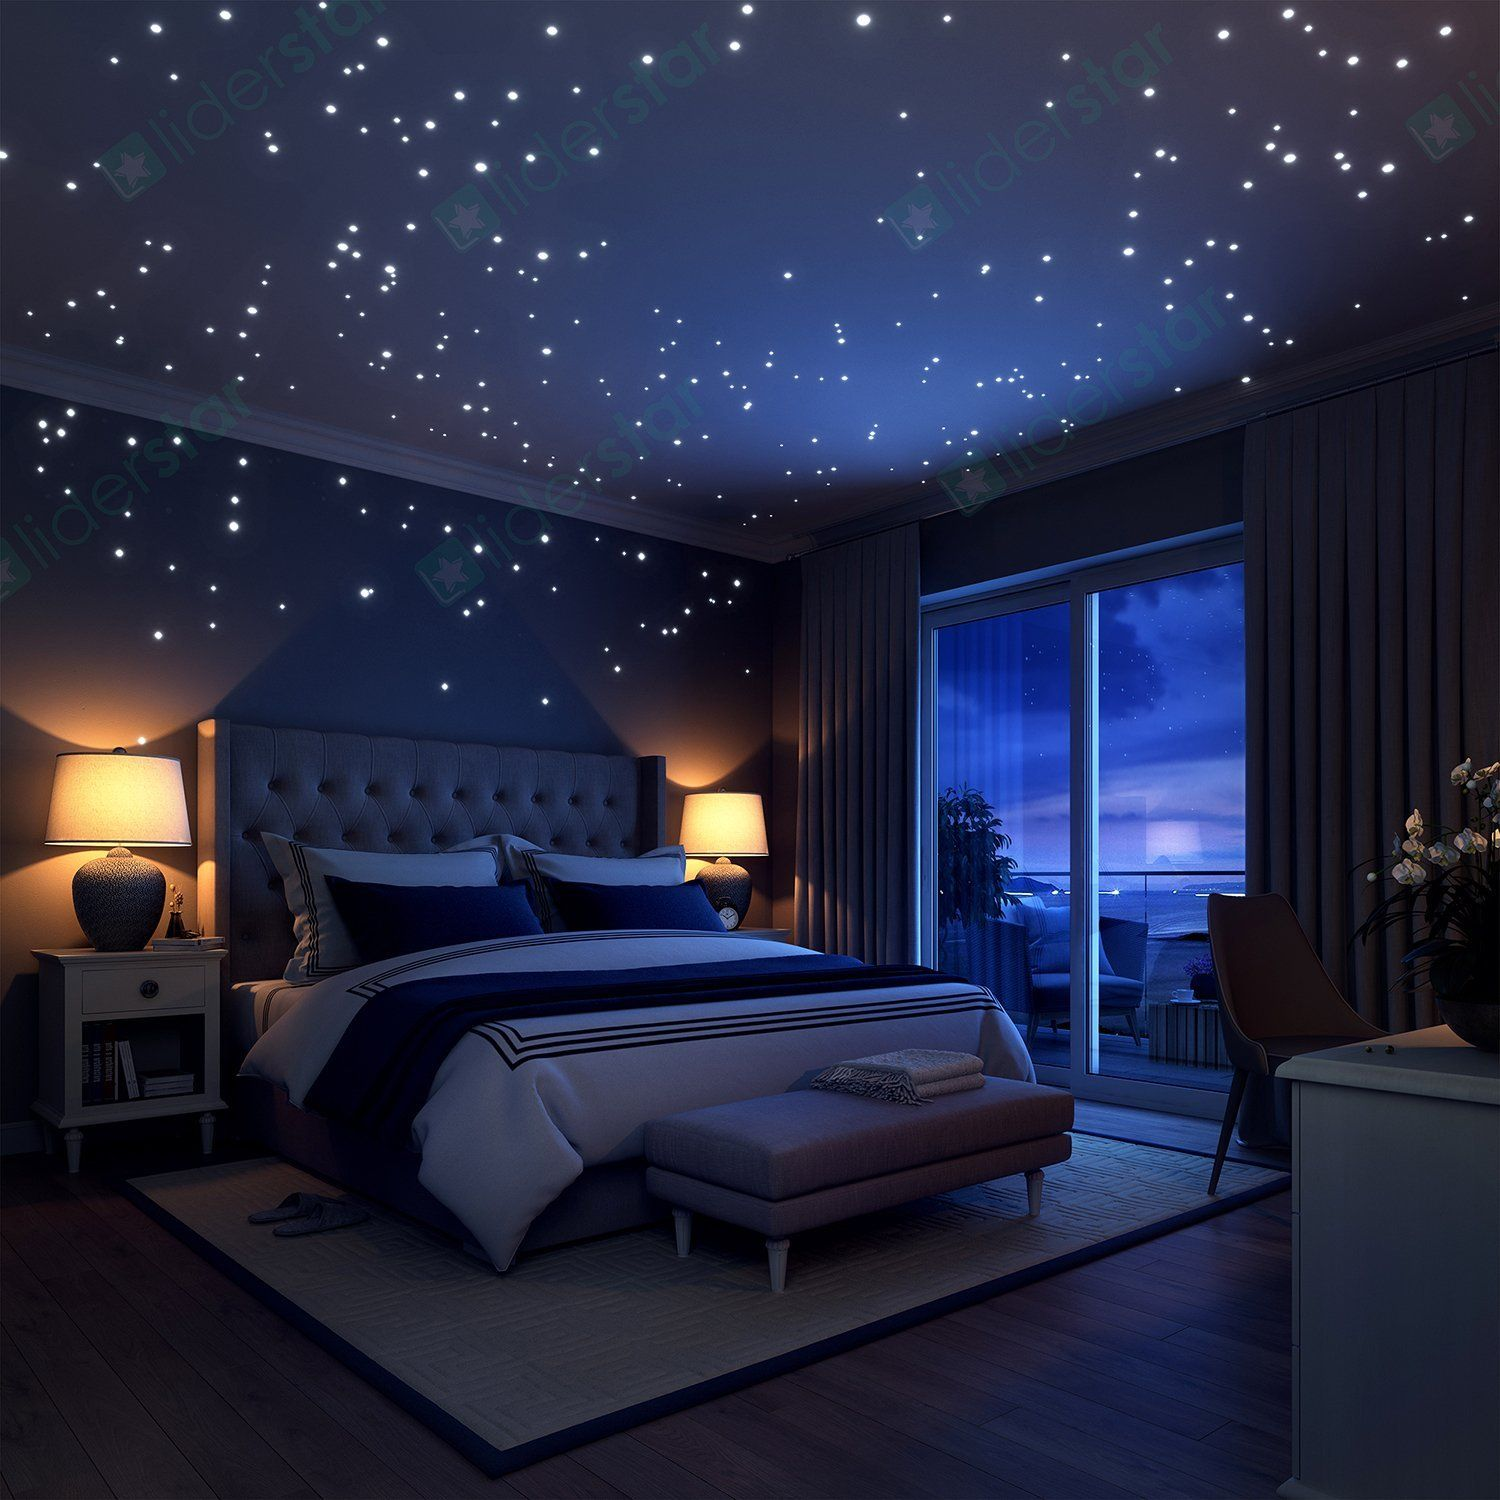 Glow In The Dark Stars Wall Stickers 252 Dots And Moon For Starry